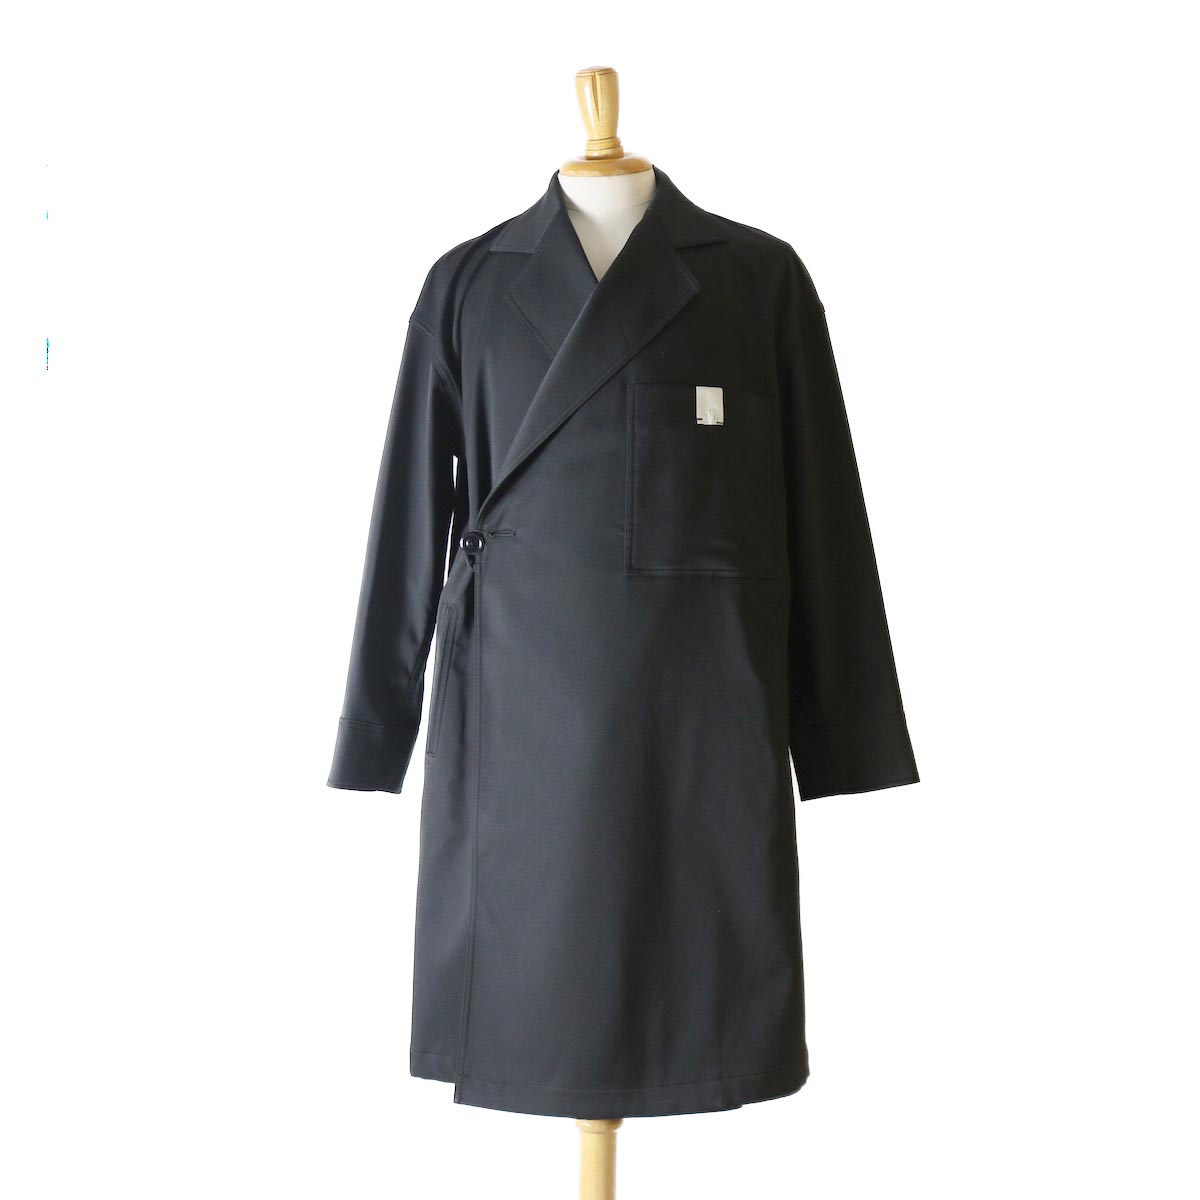 N.HOOLYWOOD / 182-CO12-038-pieces OVER COAT -Black